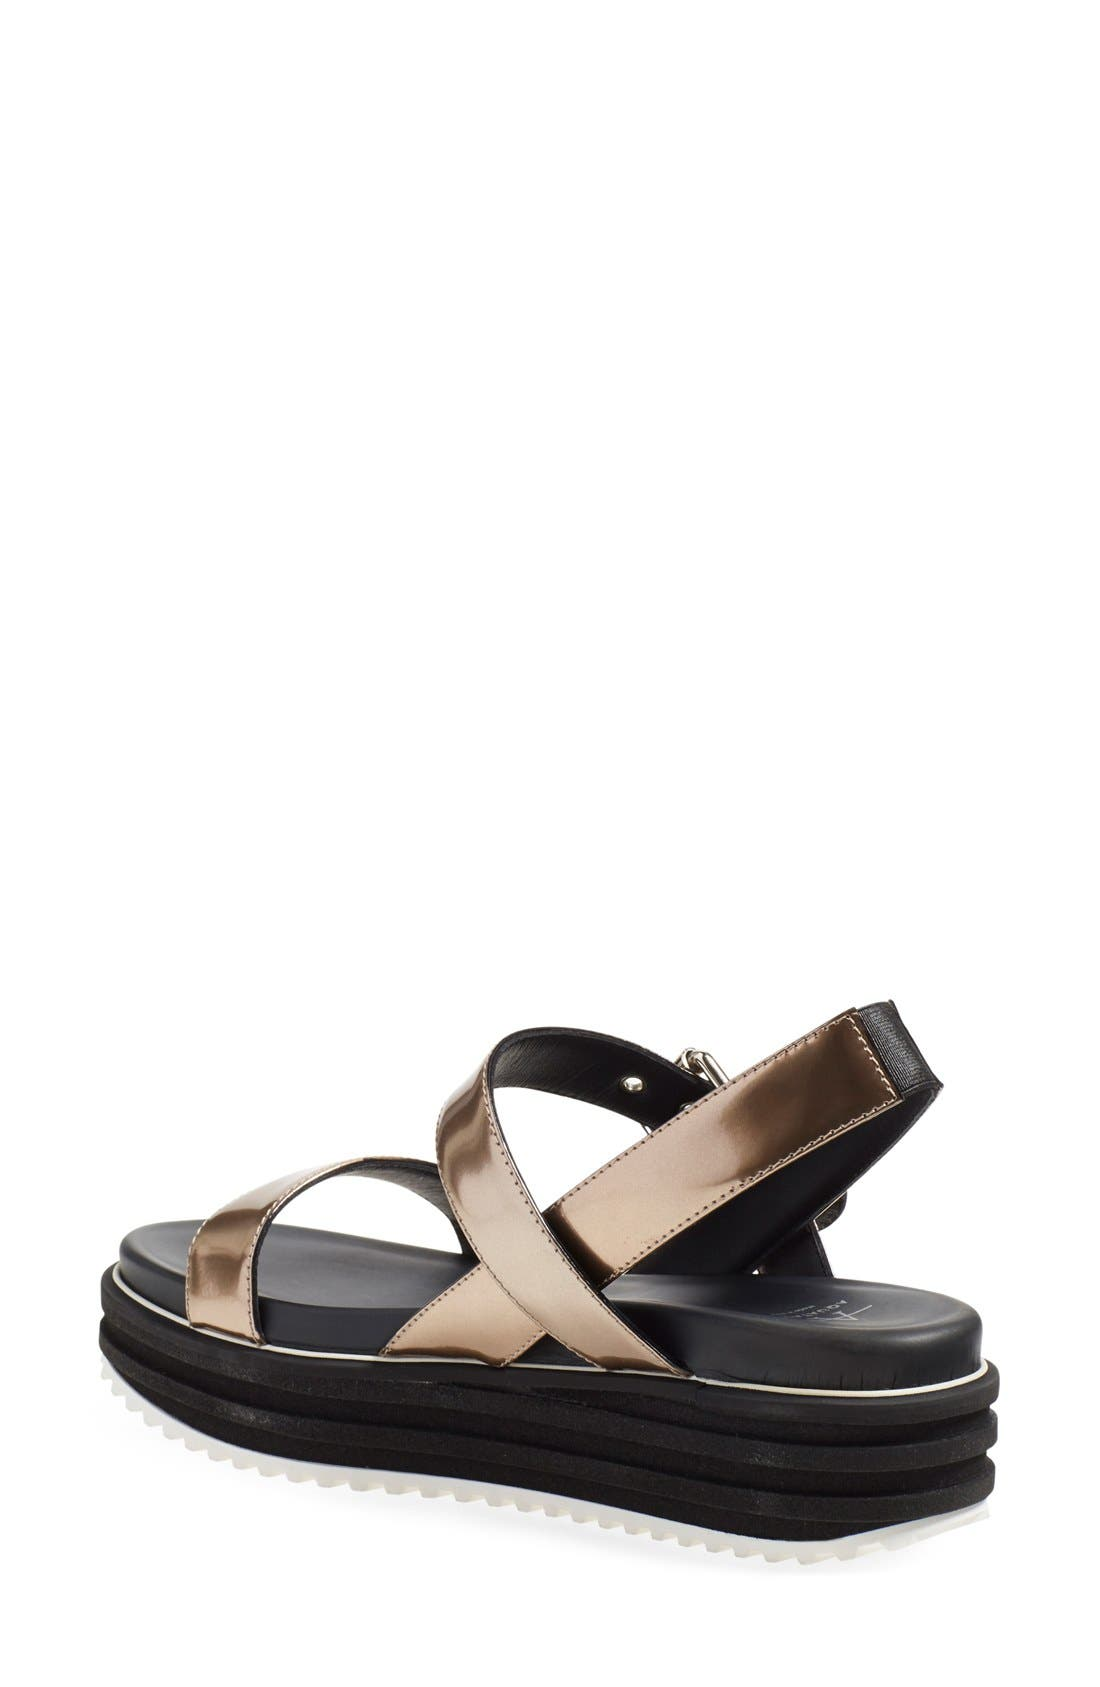 Alternate Image 2  - Aquatalia 'Wanette' Sandal (Women)